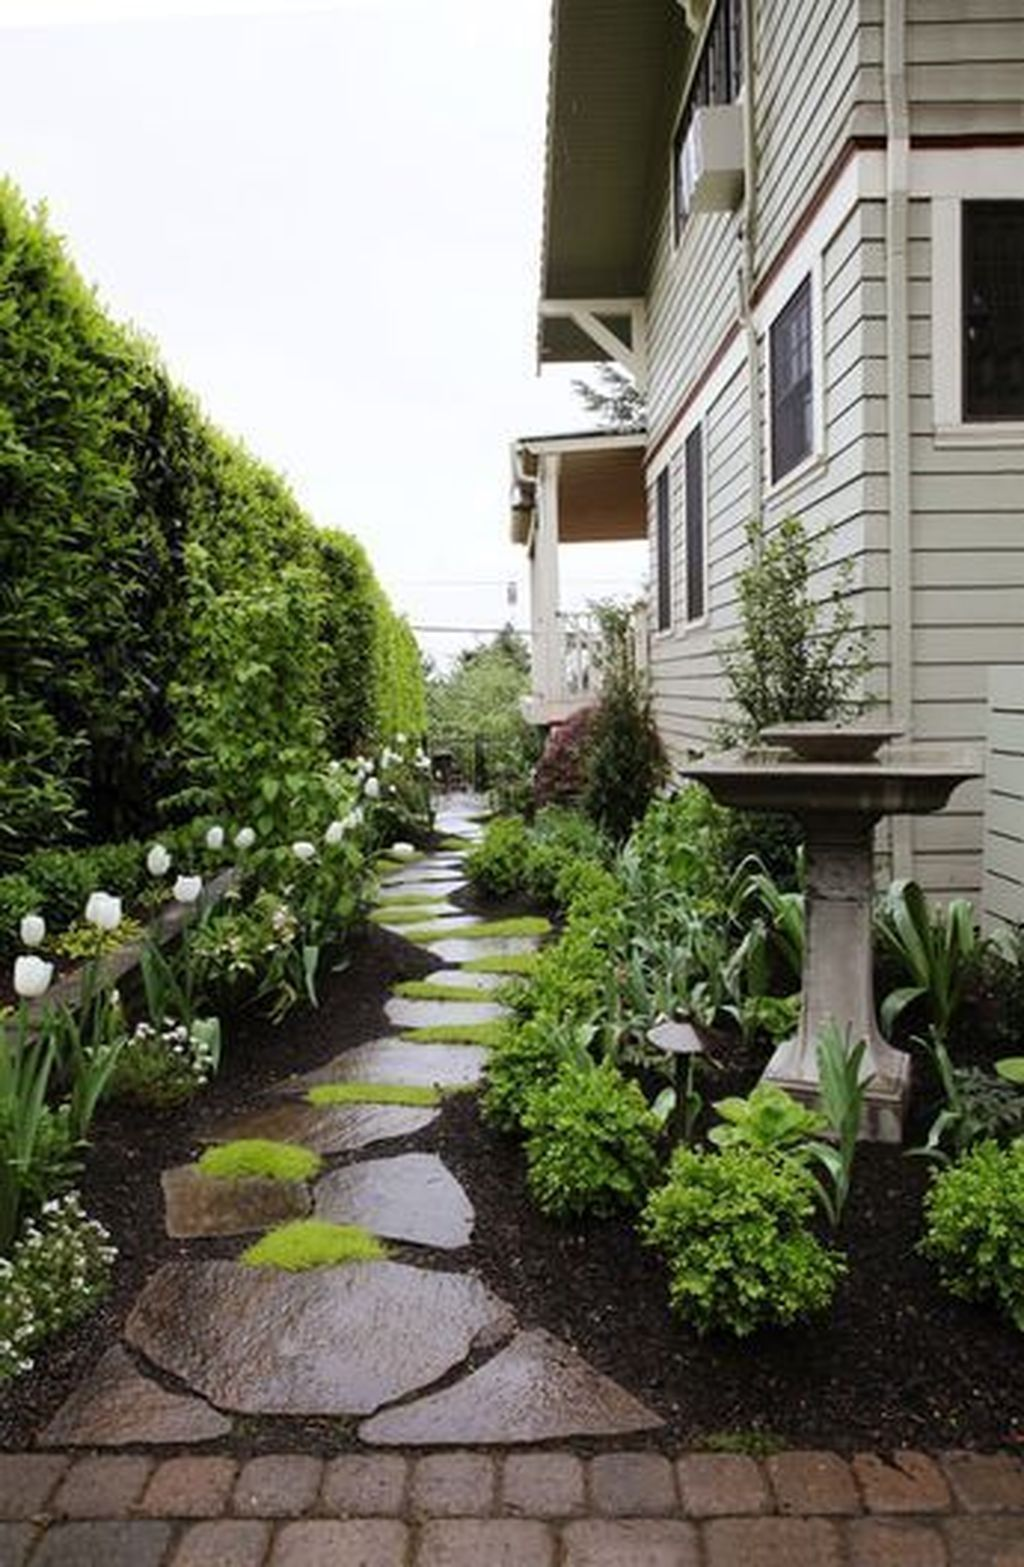 70 Best Front Yard And Backyard Landscaping Ideas: Aménagement Paysager De Petits Jardins, Jardins